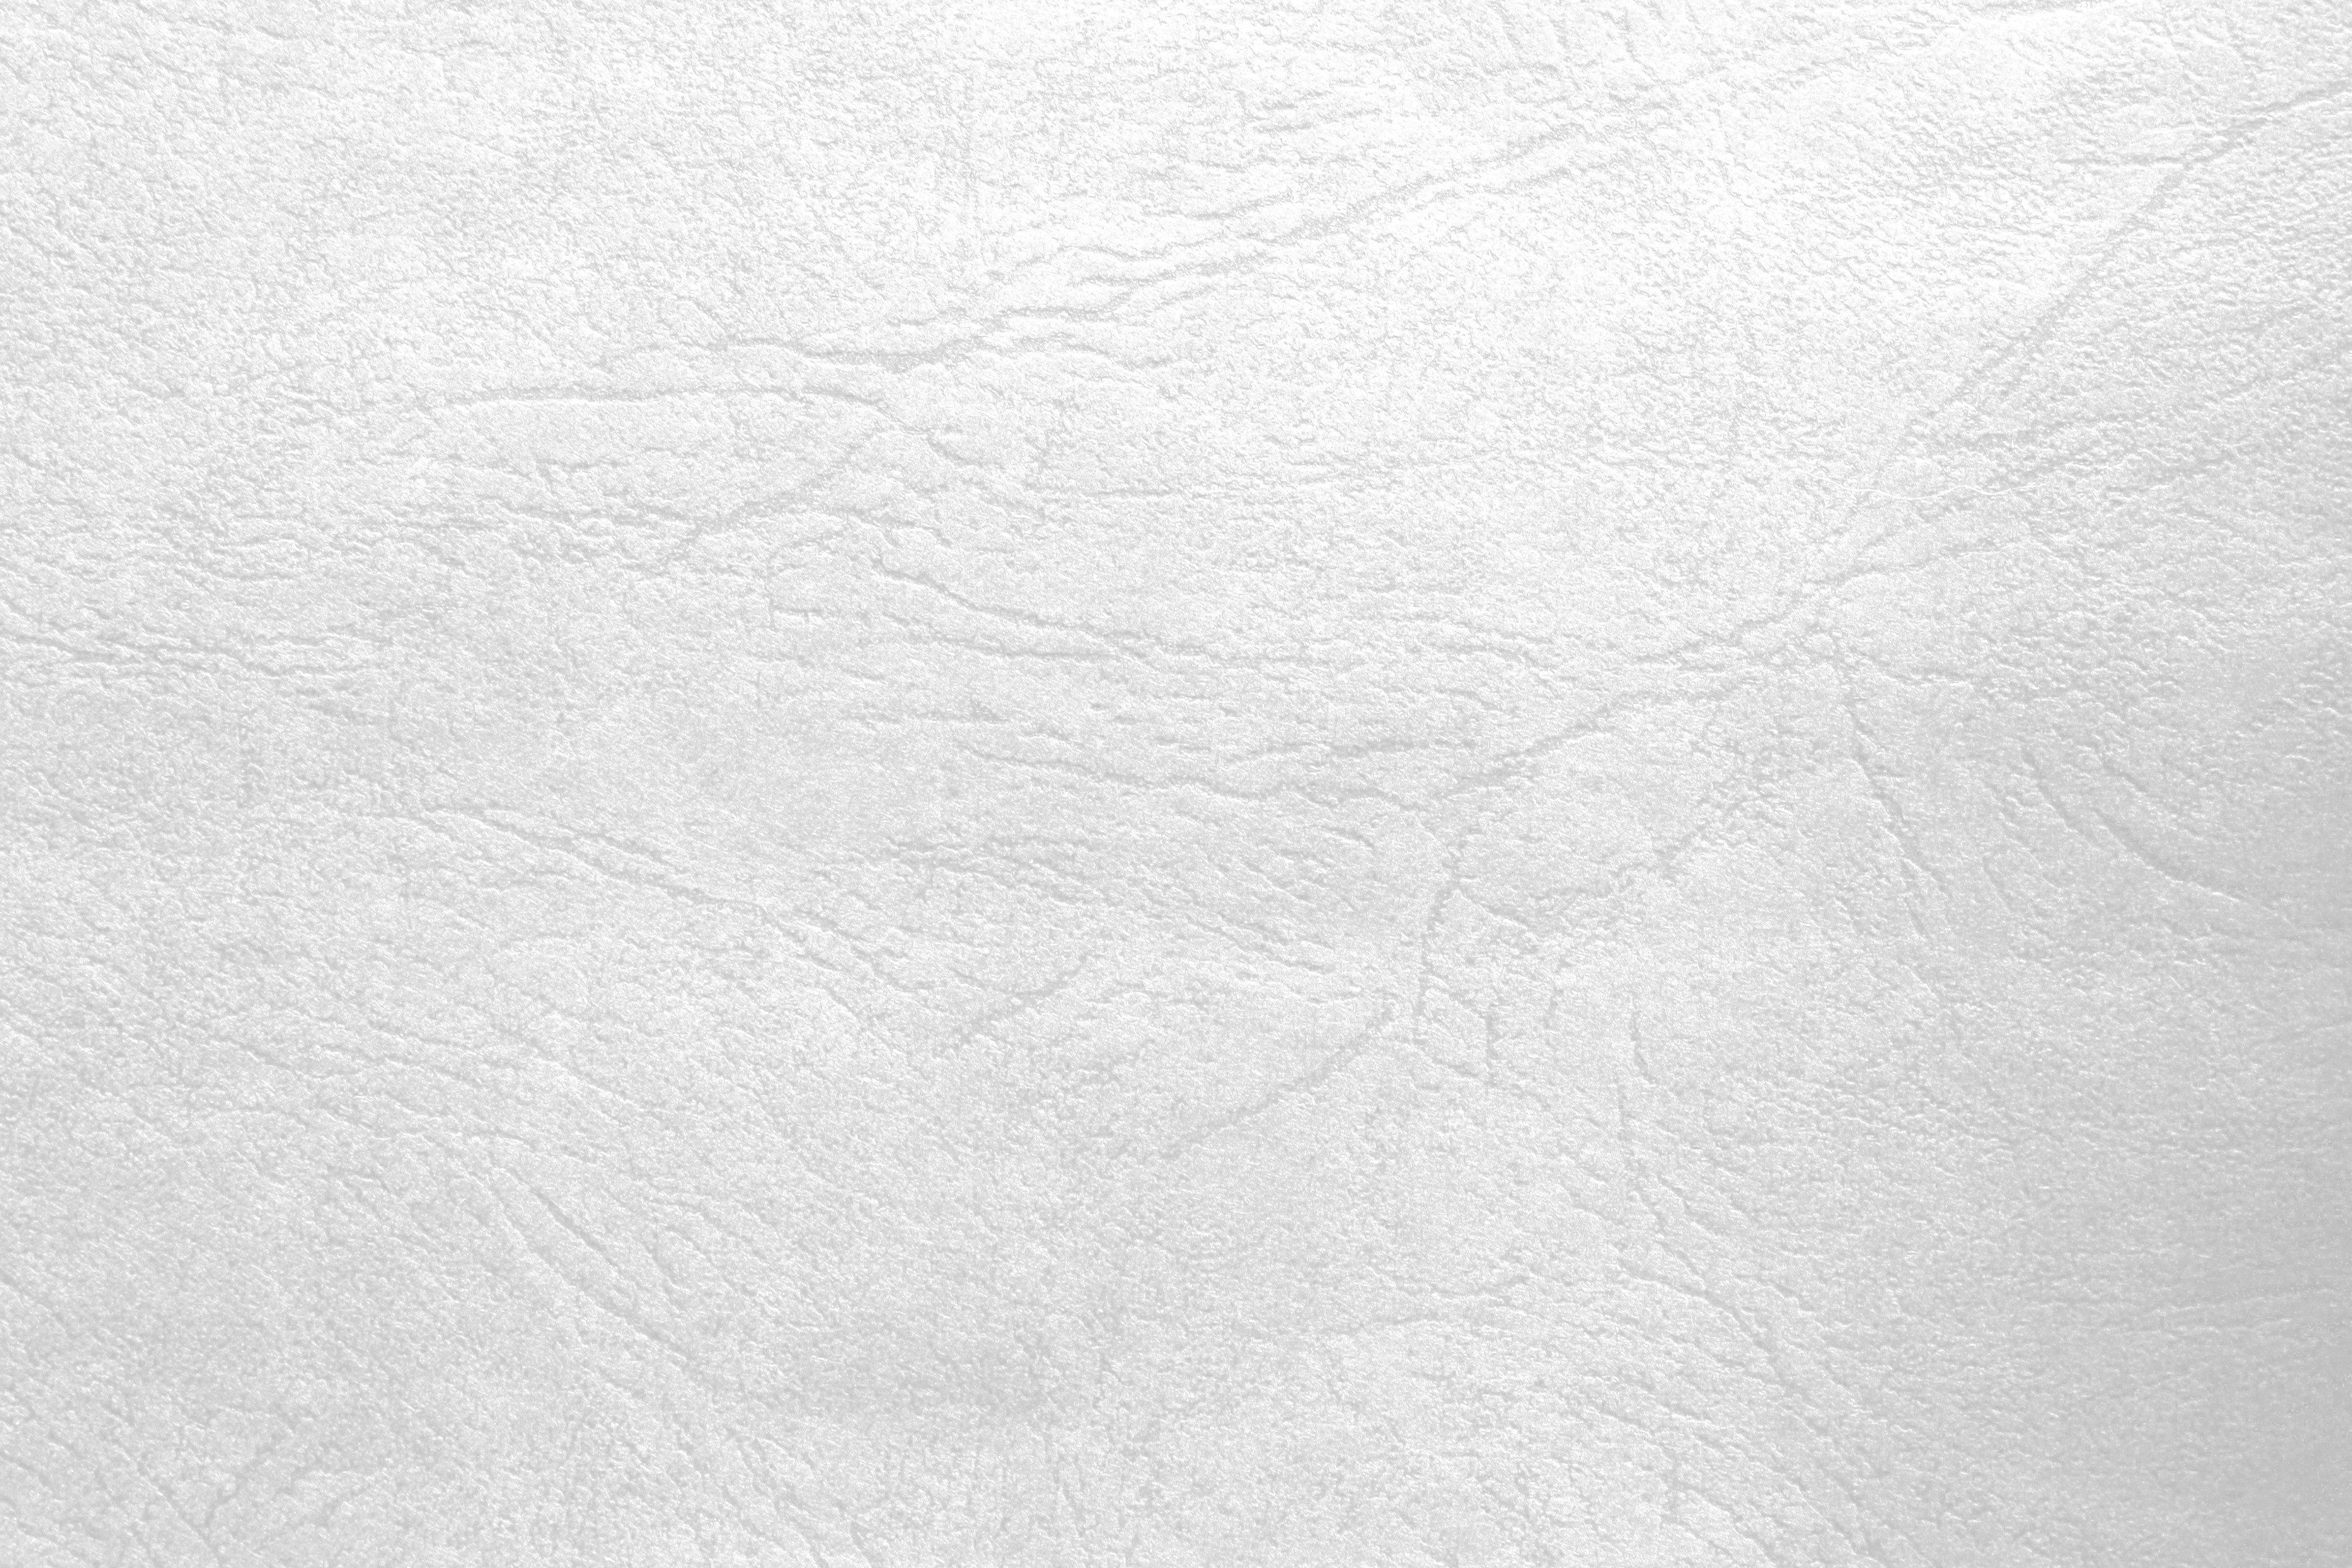 white leather texture picture free photograph photos